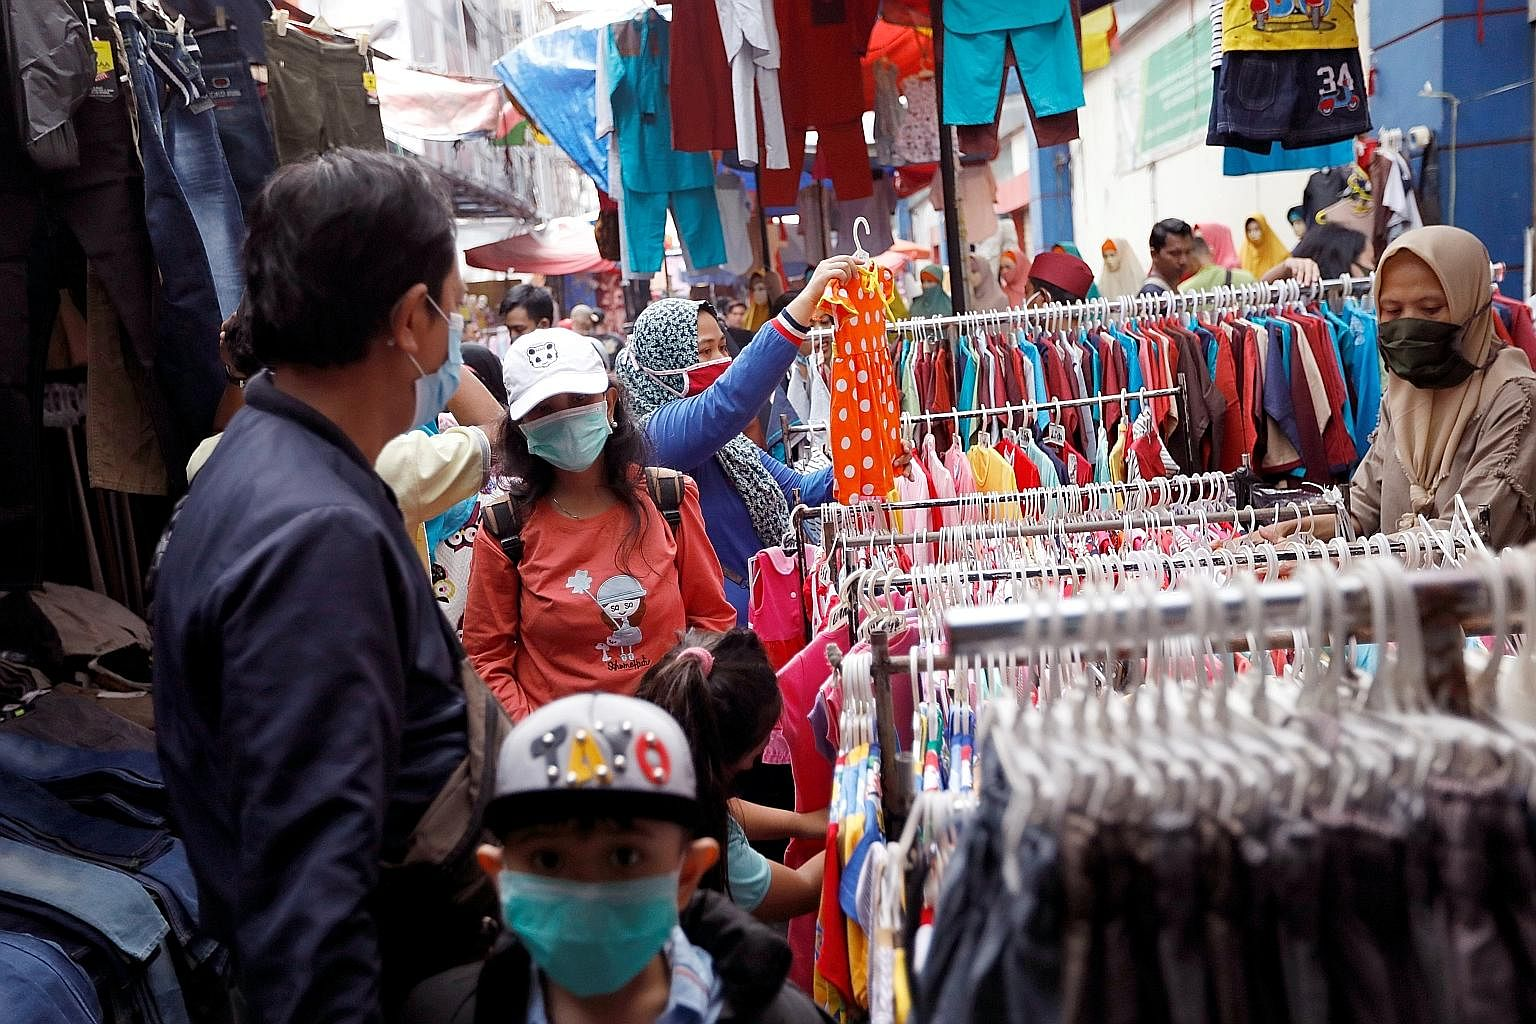 Tanah Abang market (above) in central Jakarta is among many that have been teeming with shoppers ahead of Hari Raya Aidilfitri on Sunday.